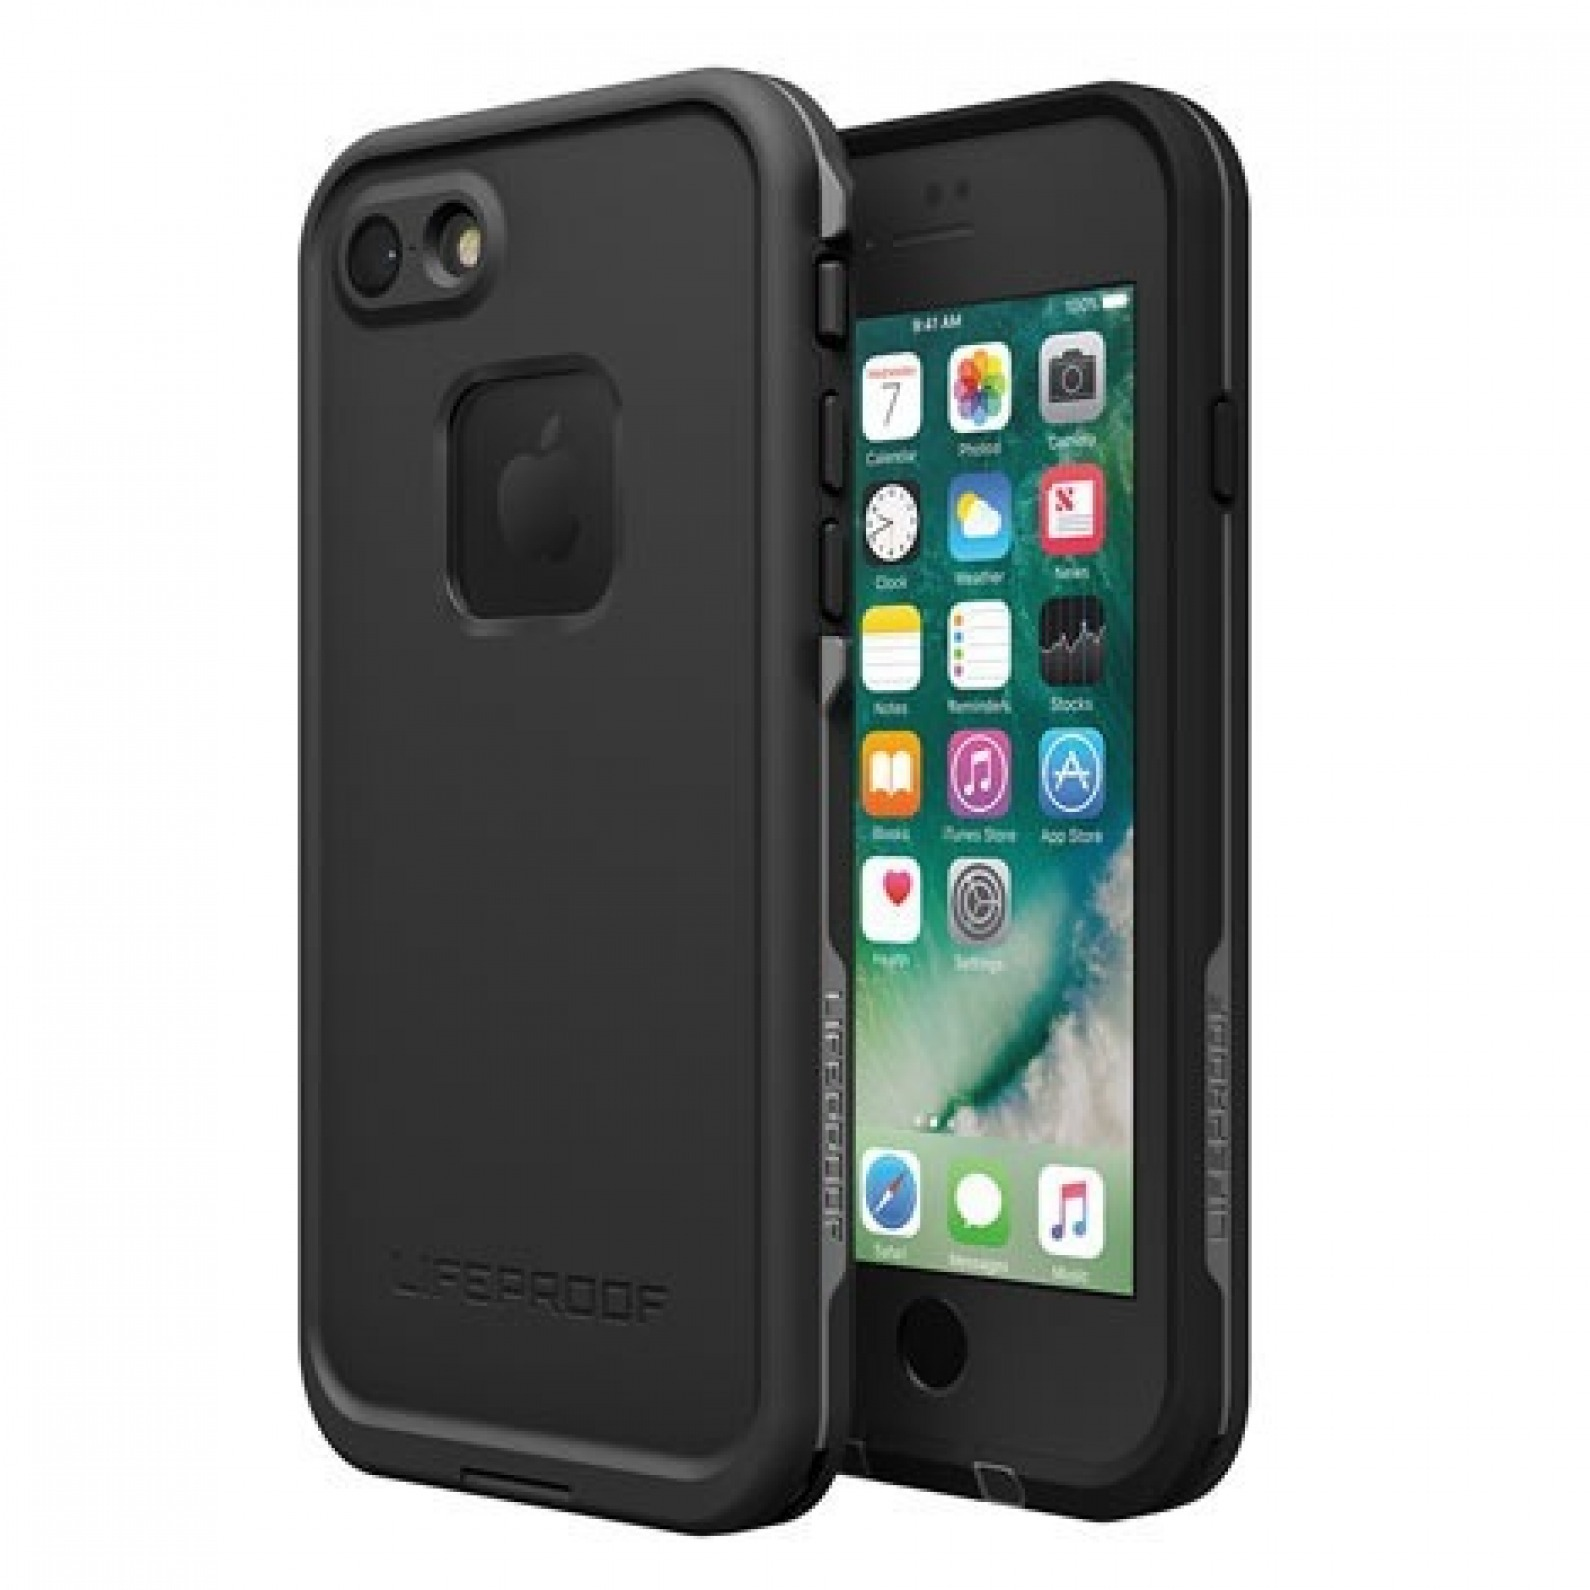 hot sale online 11879 5647e Best Protective Cases for iPhone 7 & 7 Plus: Rugged, Waterproof, and ...